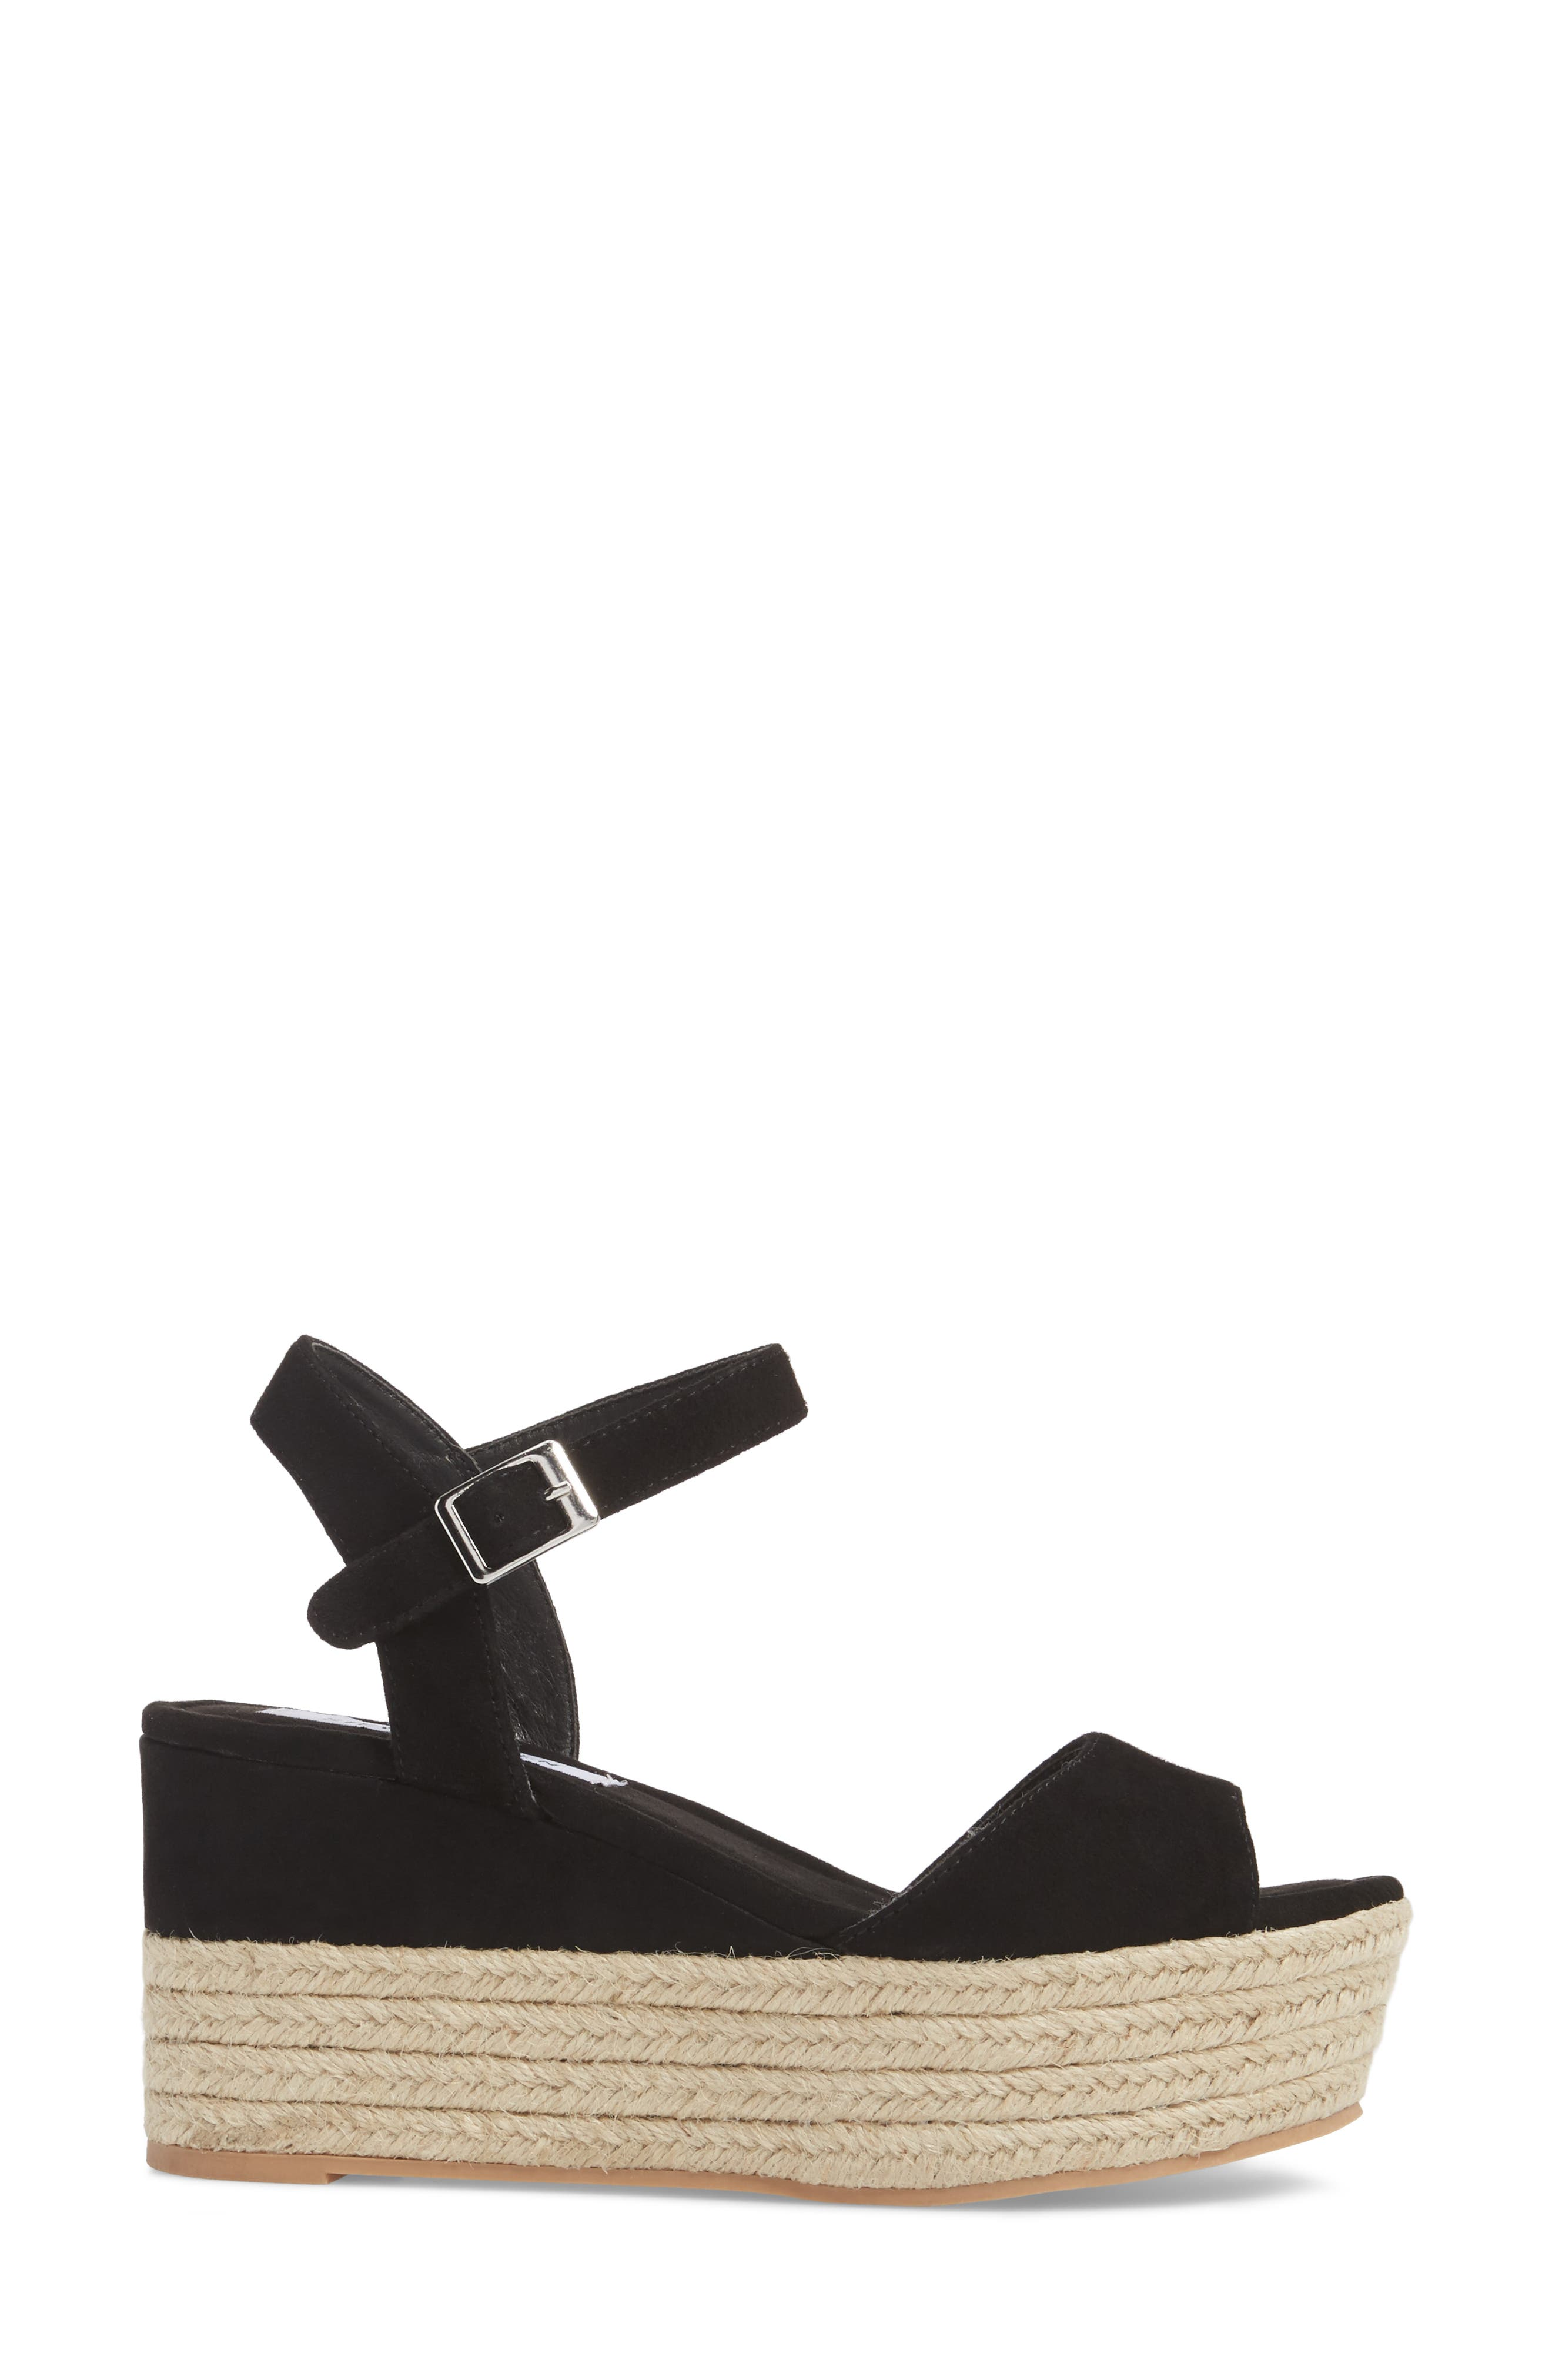 Kianna Espadrille Wedge Sandal,                             Alternate thumbnail 3, color,                             BLACK SUEDE